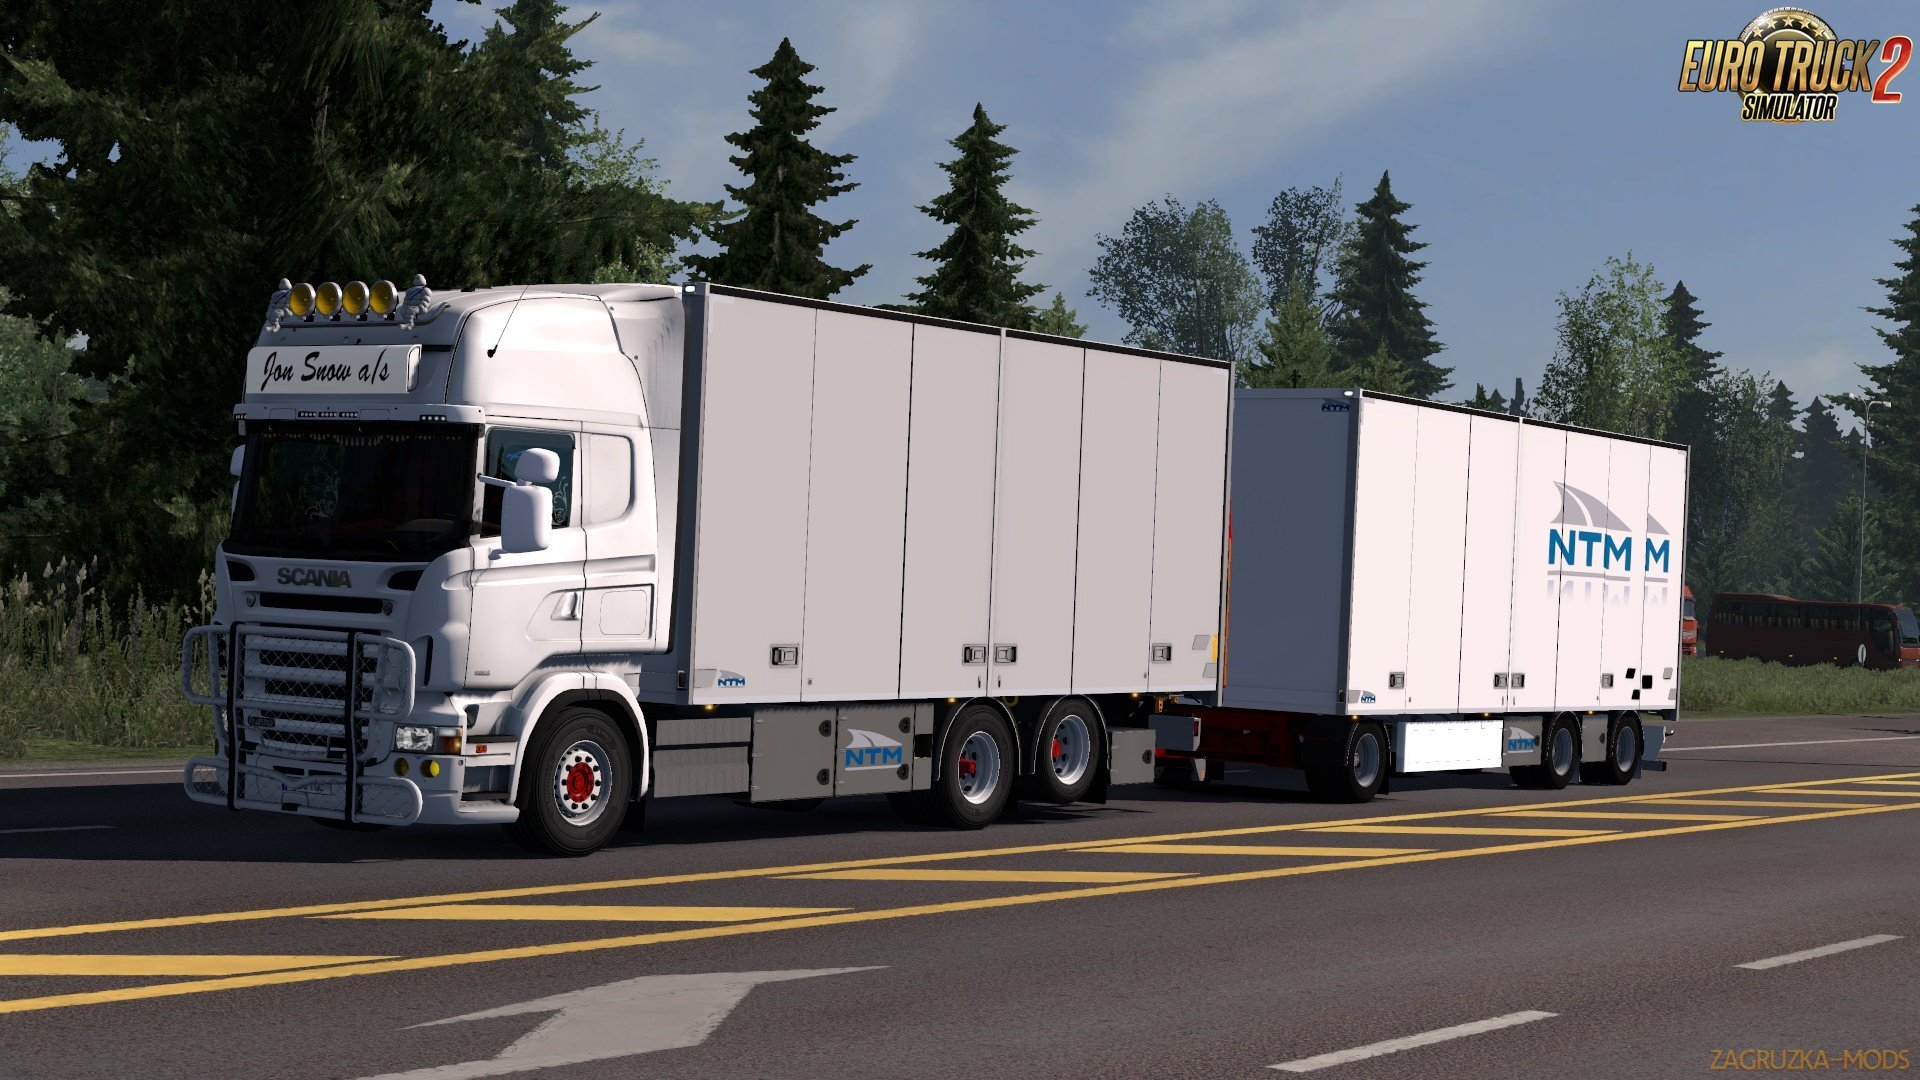 NTM Semi and Full-Trailers v1.4.1 by Kast